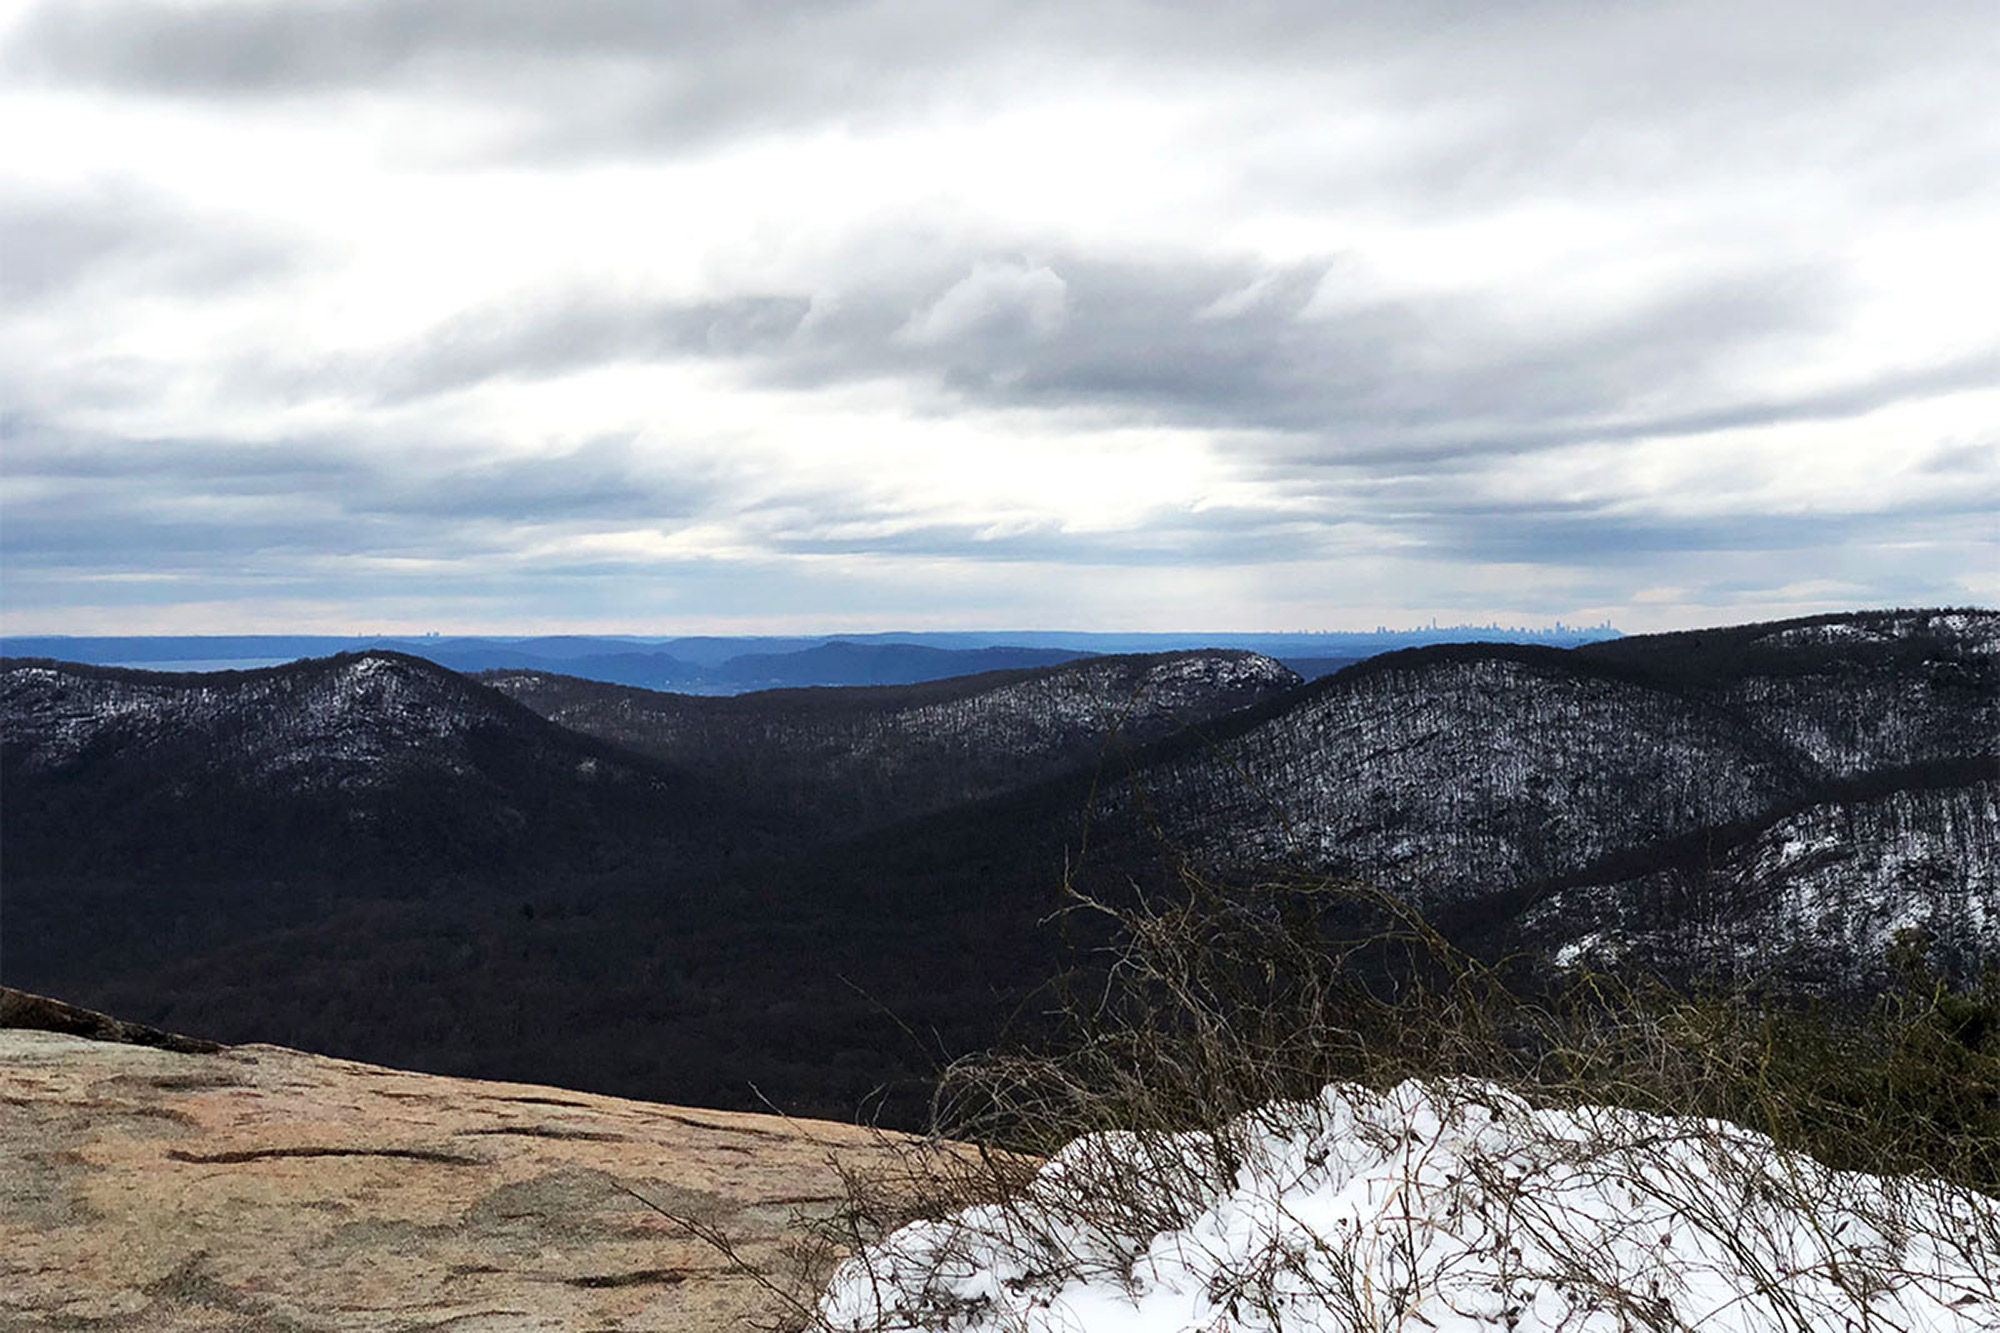 The view south from Bear Mountain's summit, including New York's skyline.   Credit: John Lepak